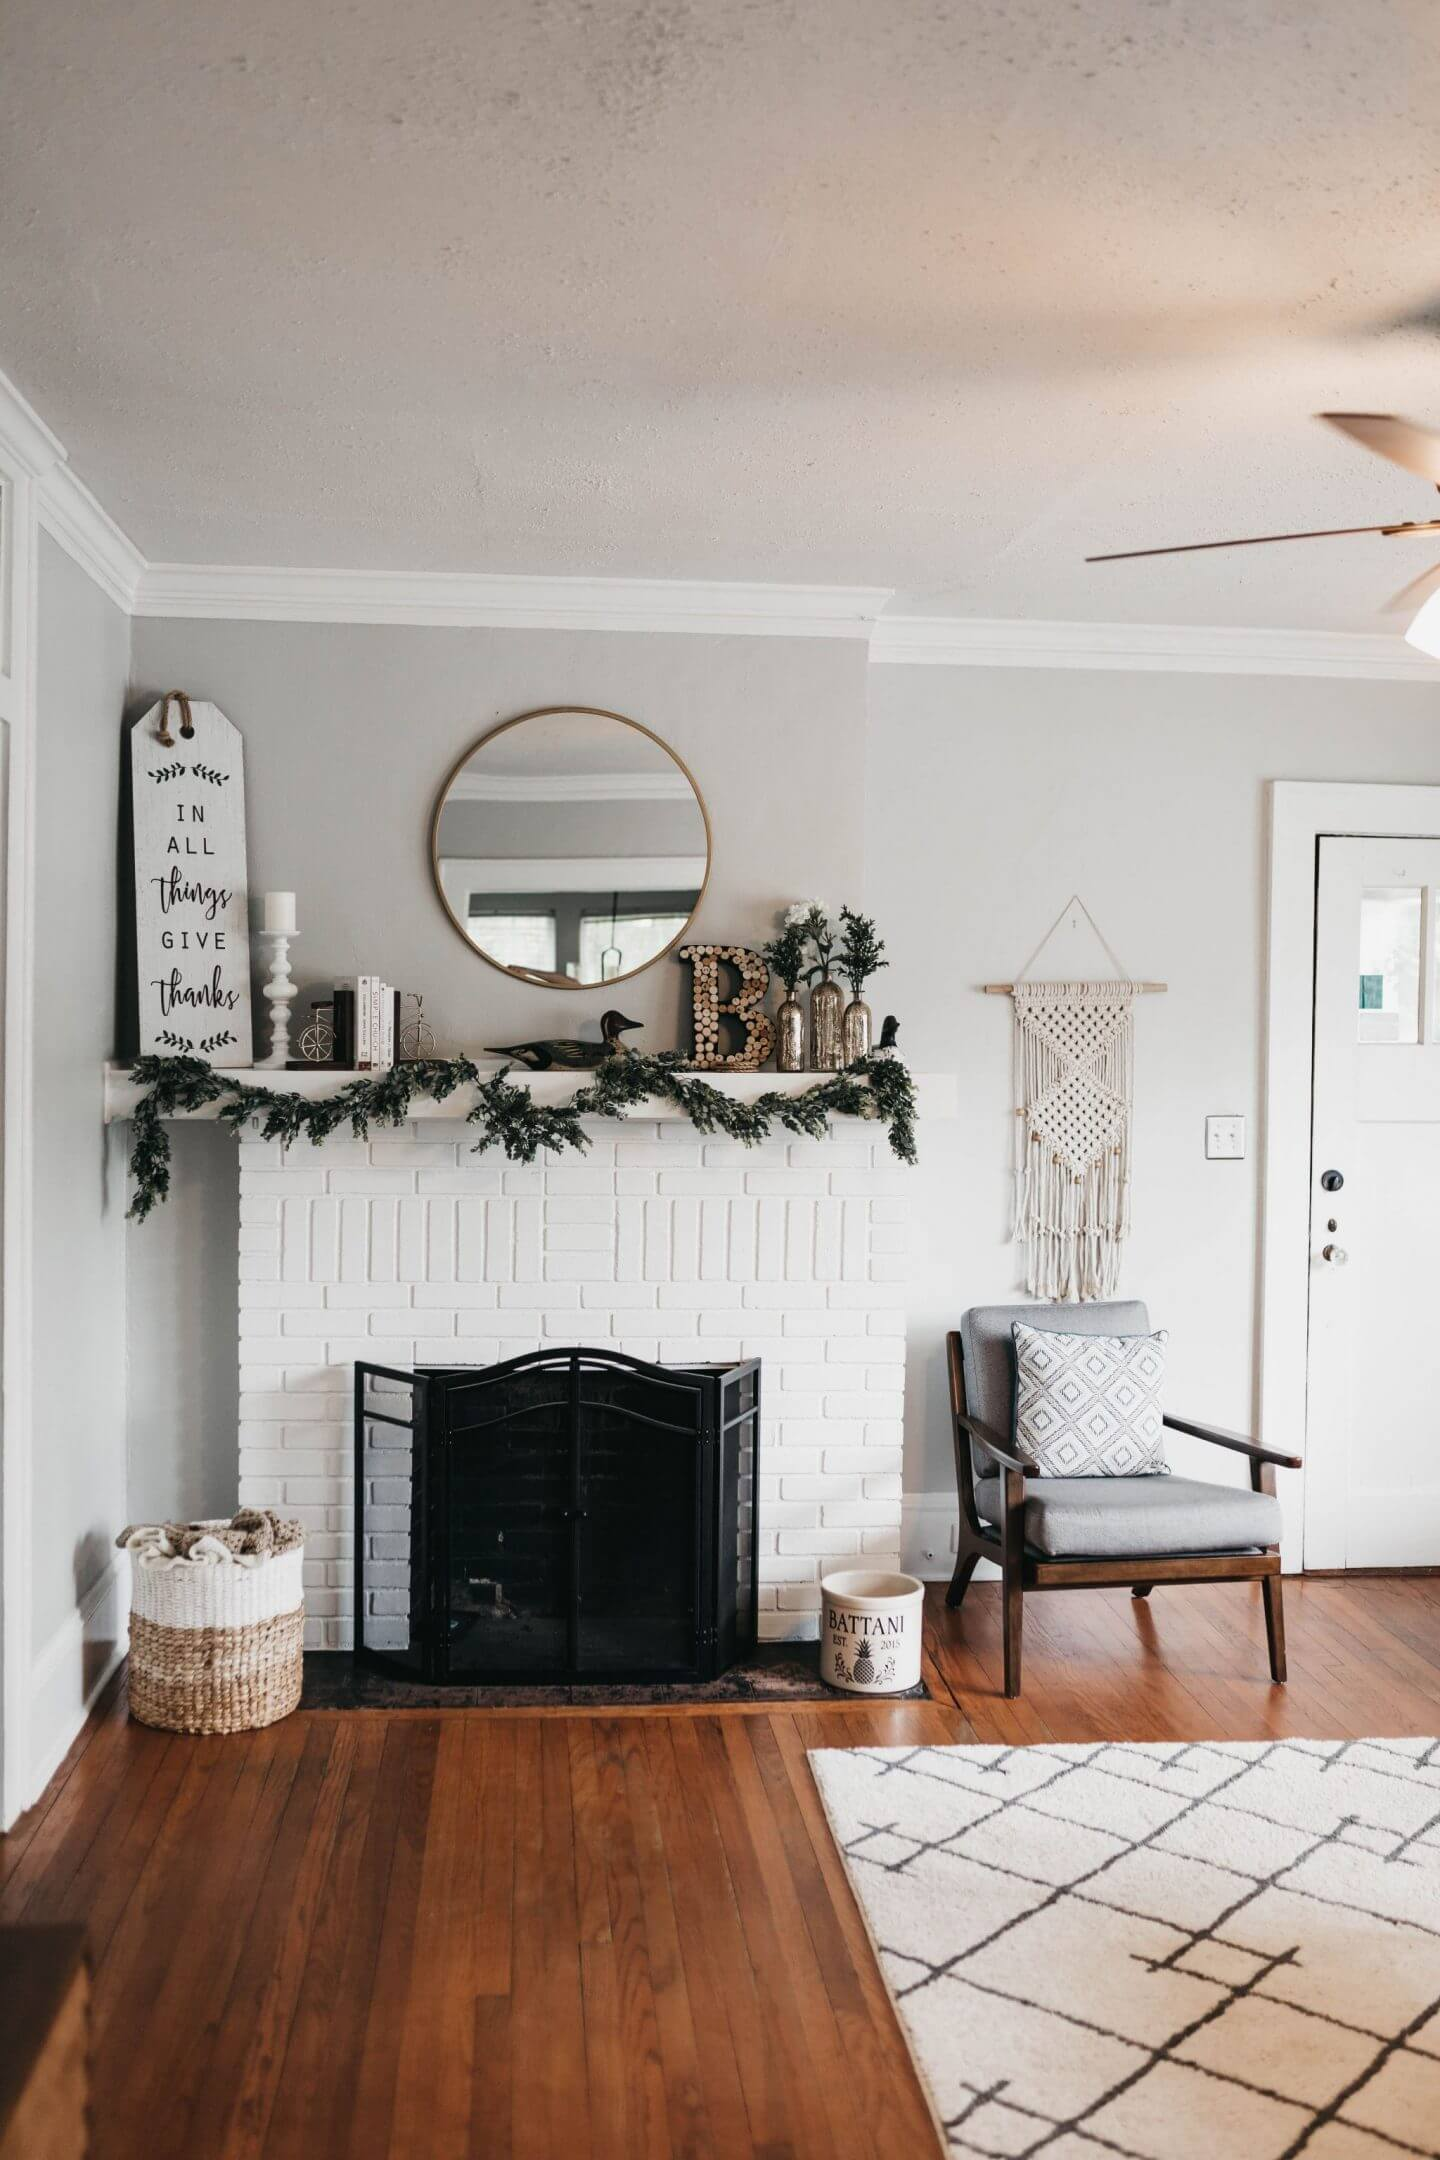 Christmas fireplace with garland along the mantel